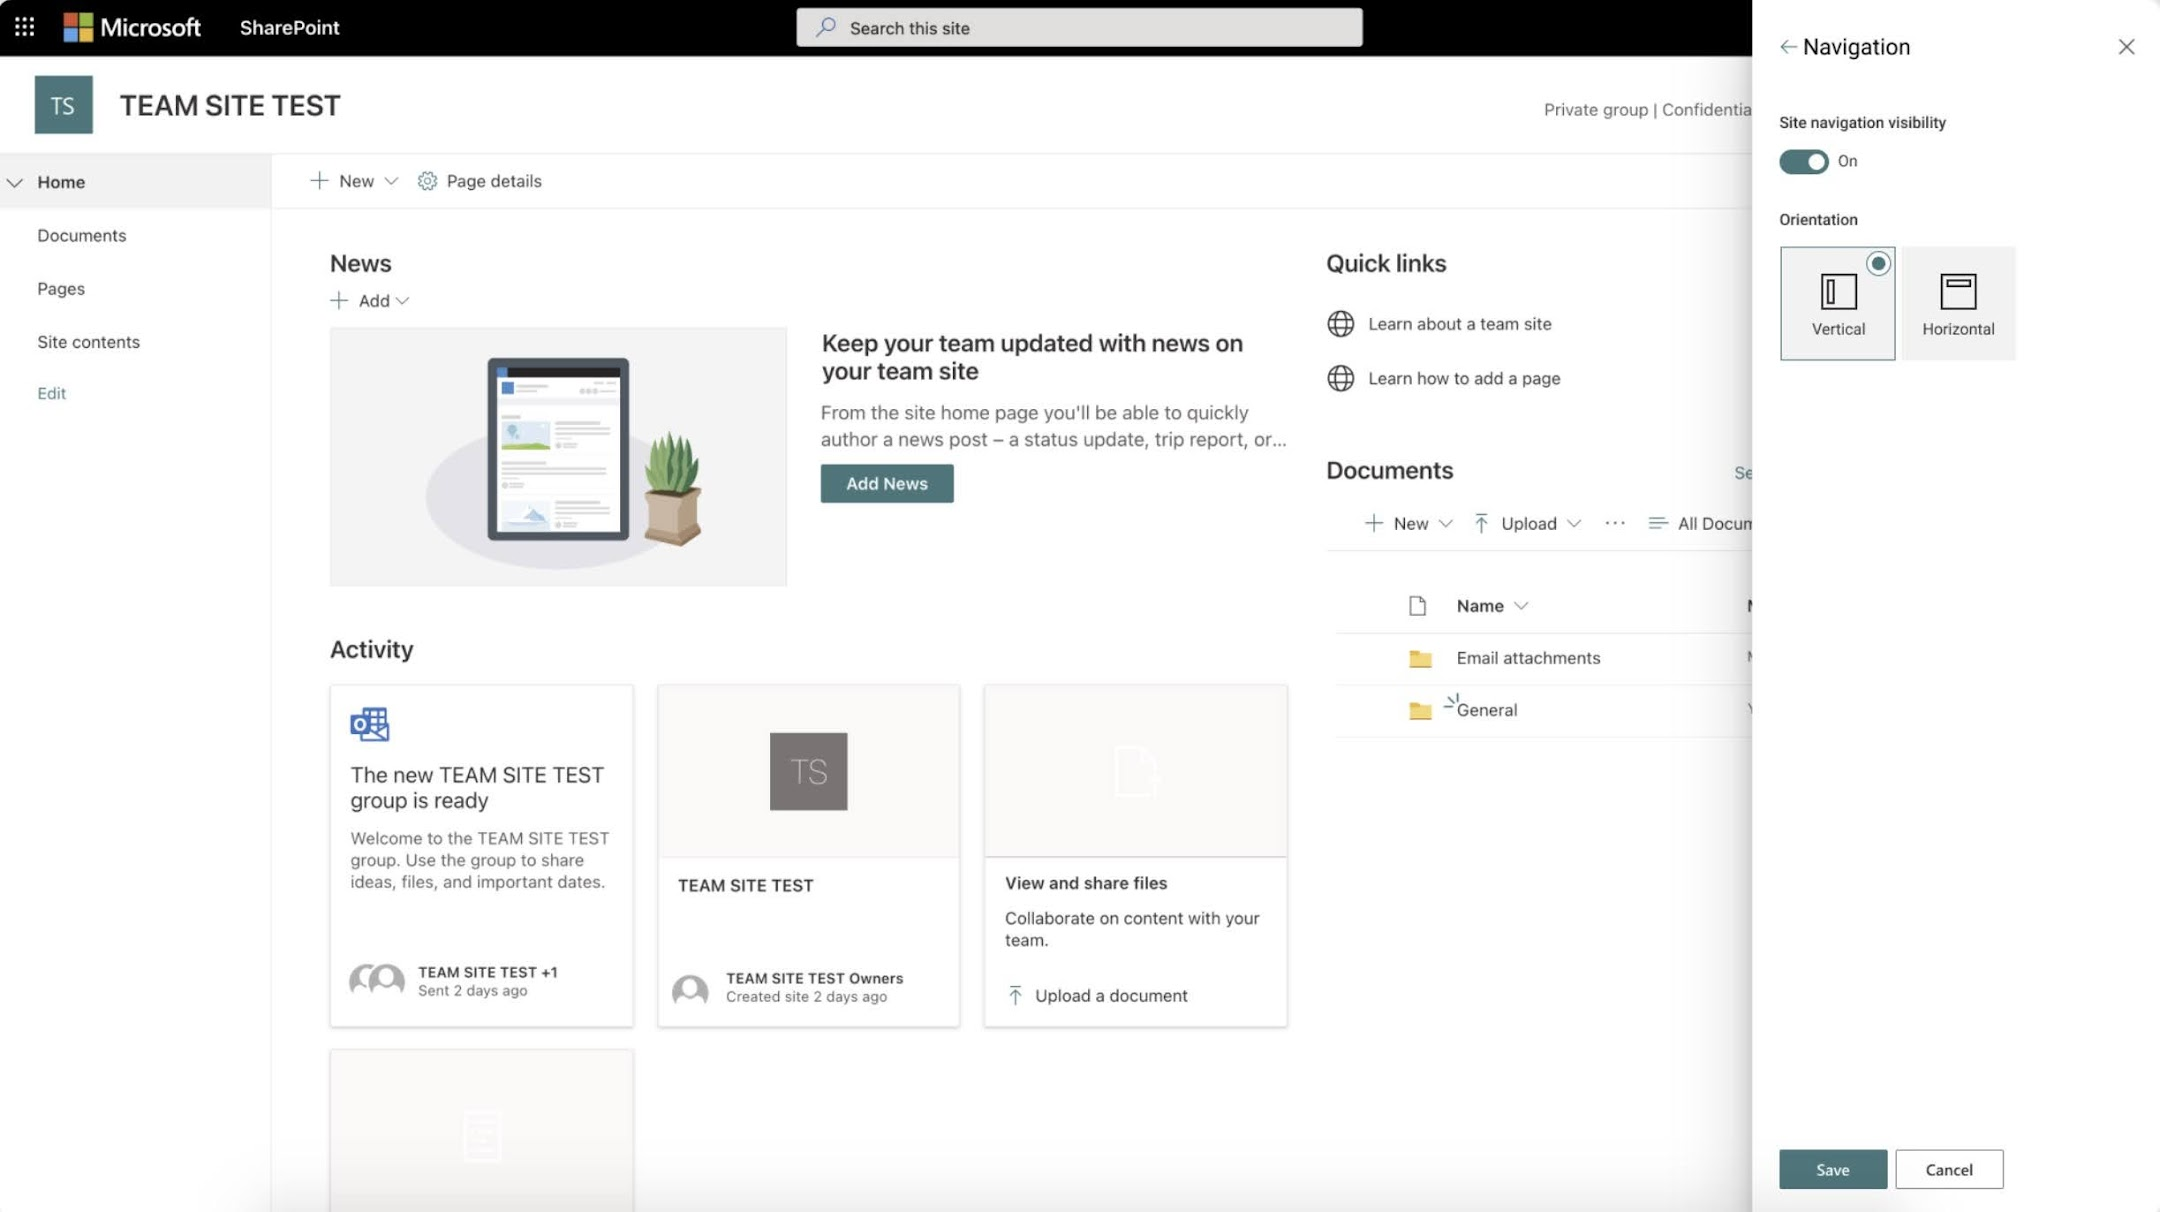 The Horizontal option displays site navigation on the top of the page just below the site header like on a SharePoint communication site